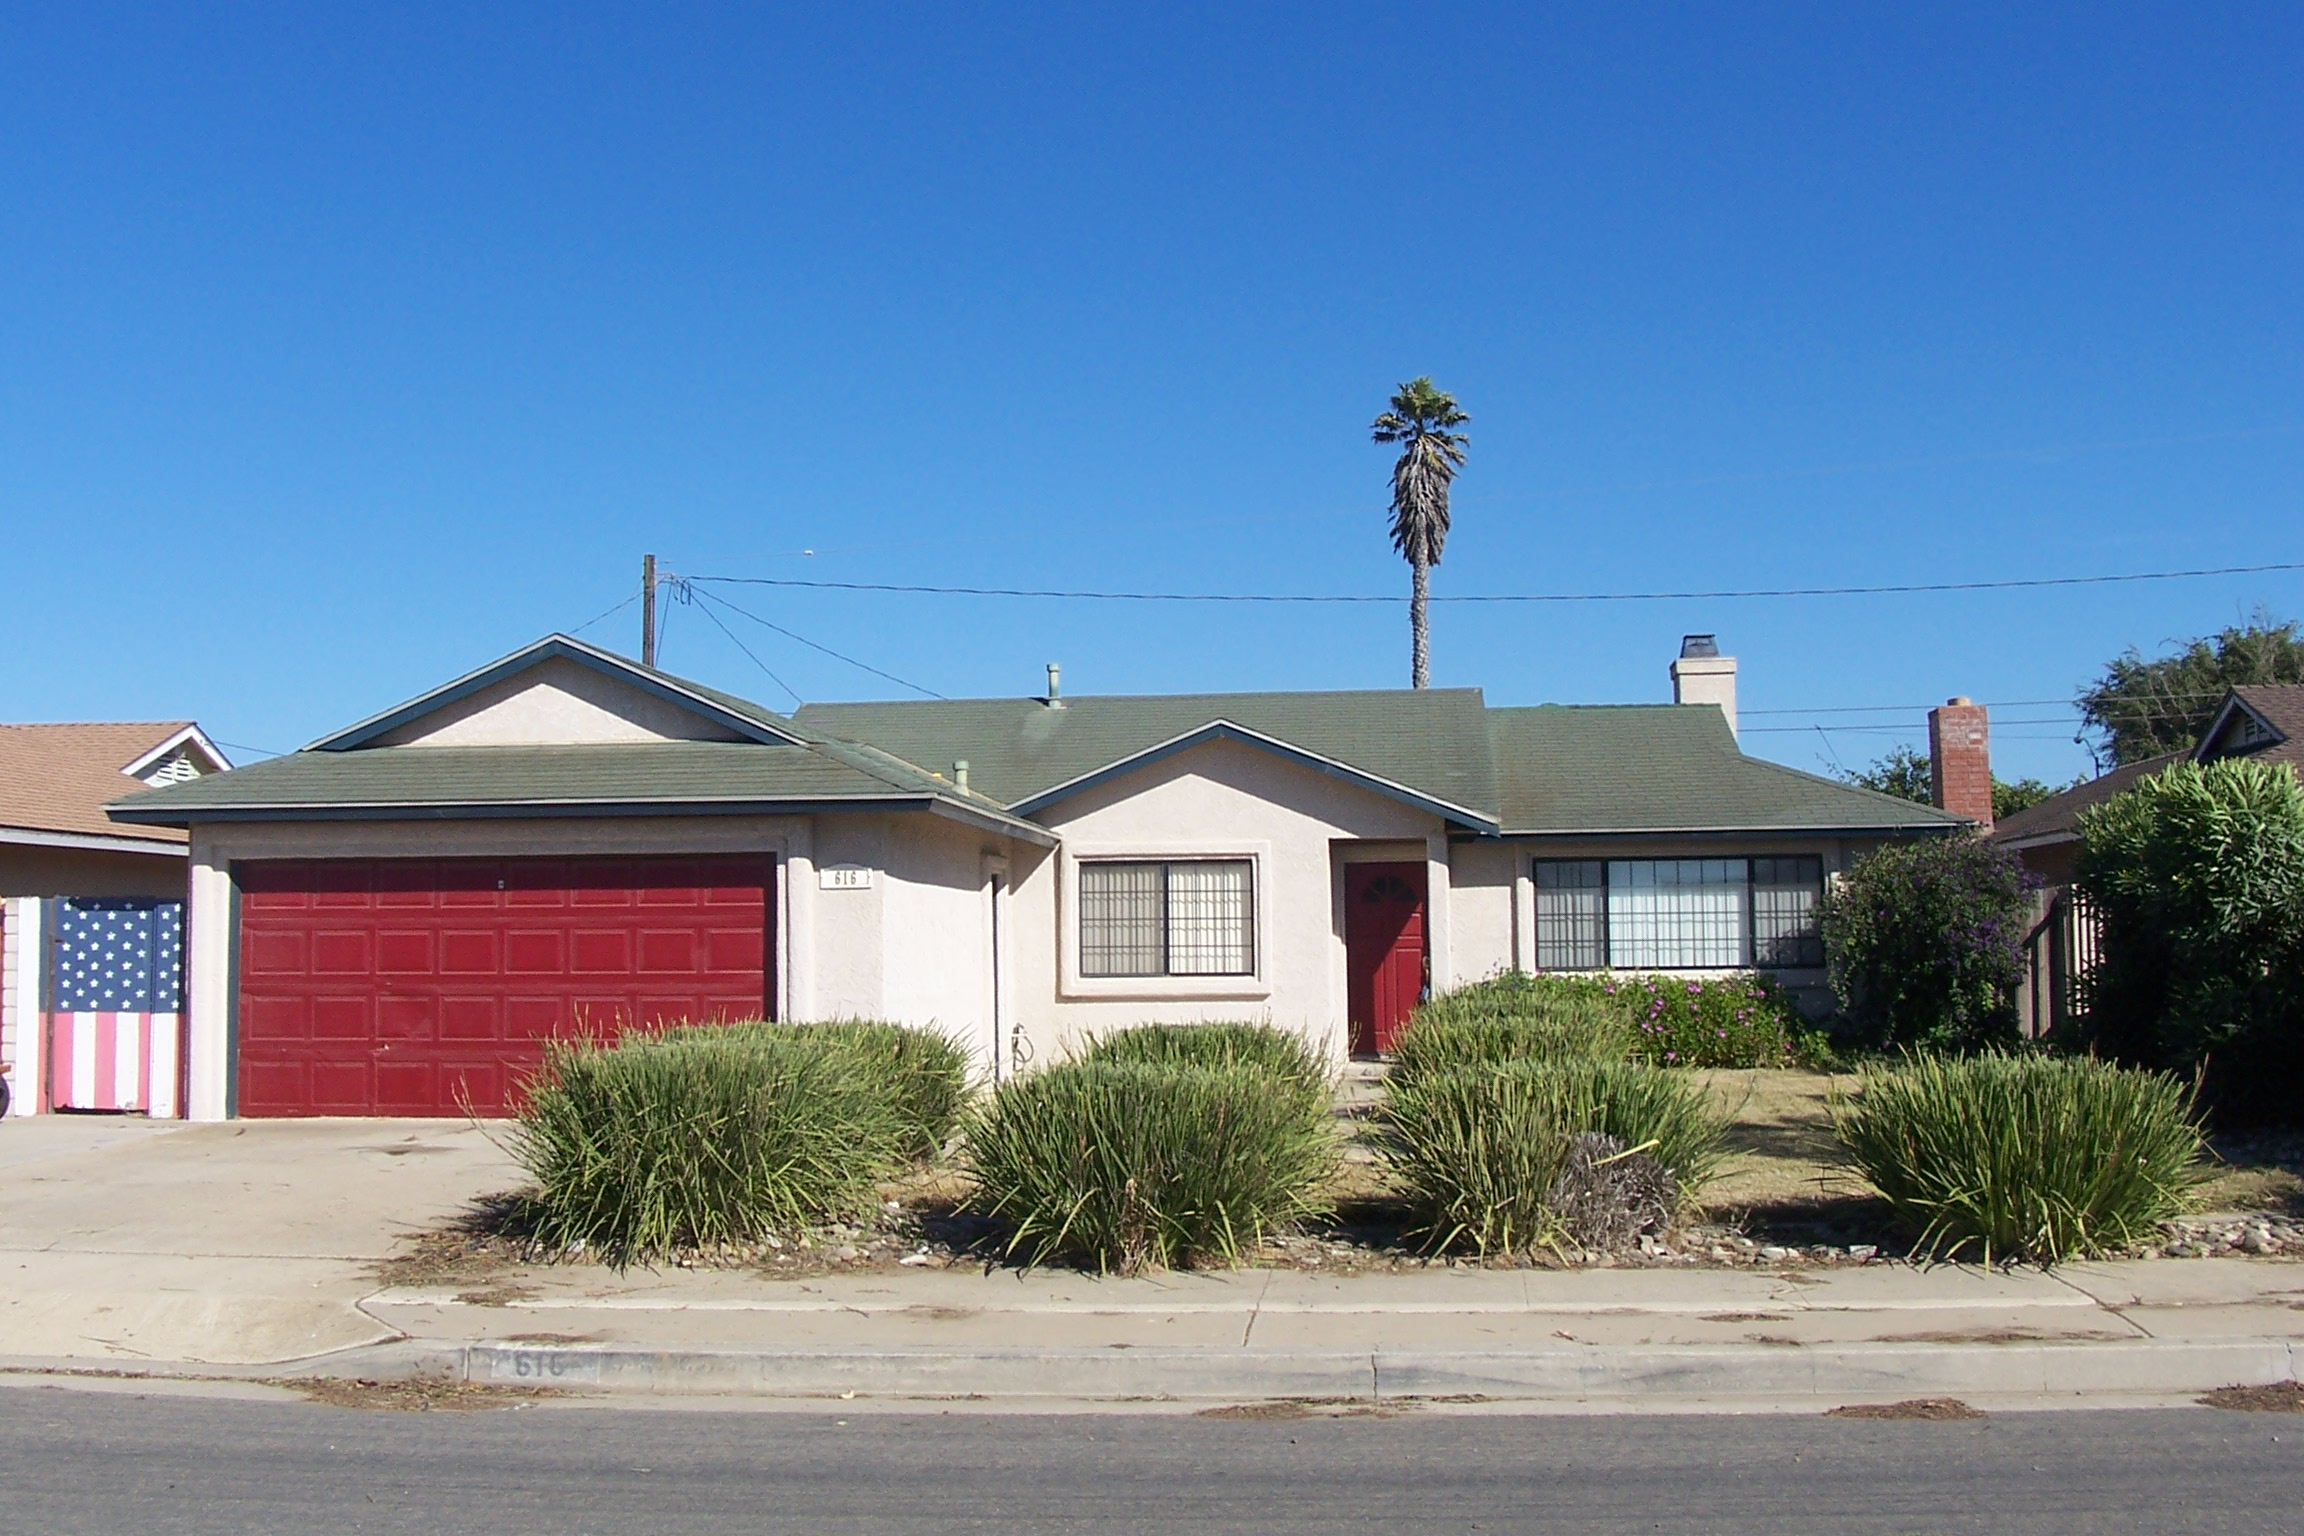 616 N Z Street in Lompoc, CA